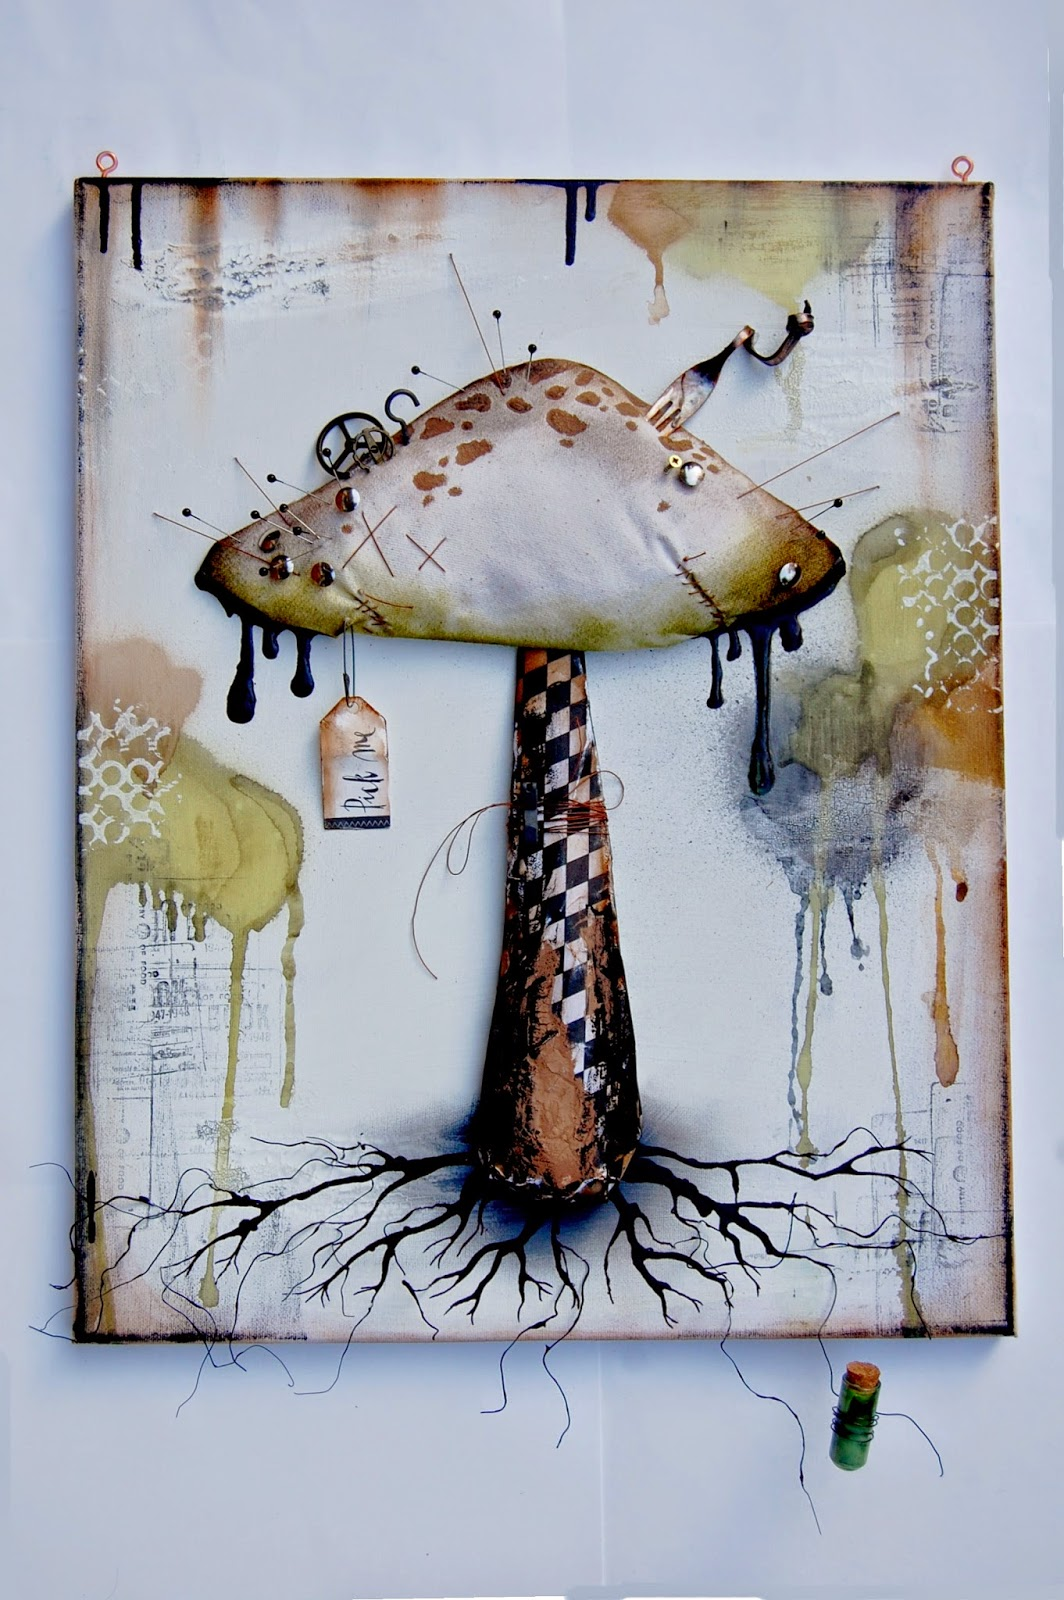 How to scrapbook canvas - Hello Everyone Let S Contunue With The November Canvas Taste Here Is My Second Mixed Media Canvas That Is Folowing My Gothic Fairytale Style The Poison